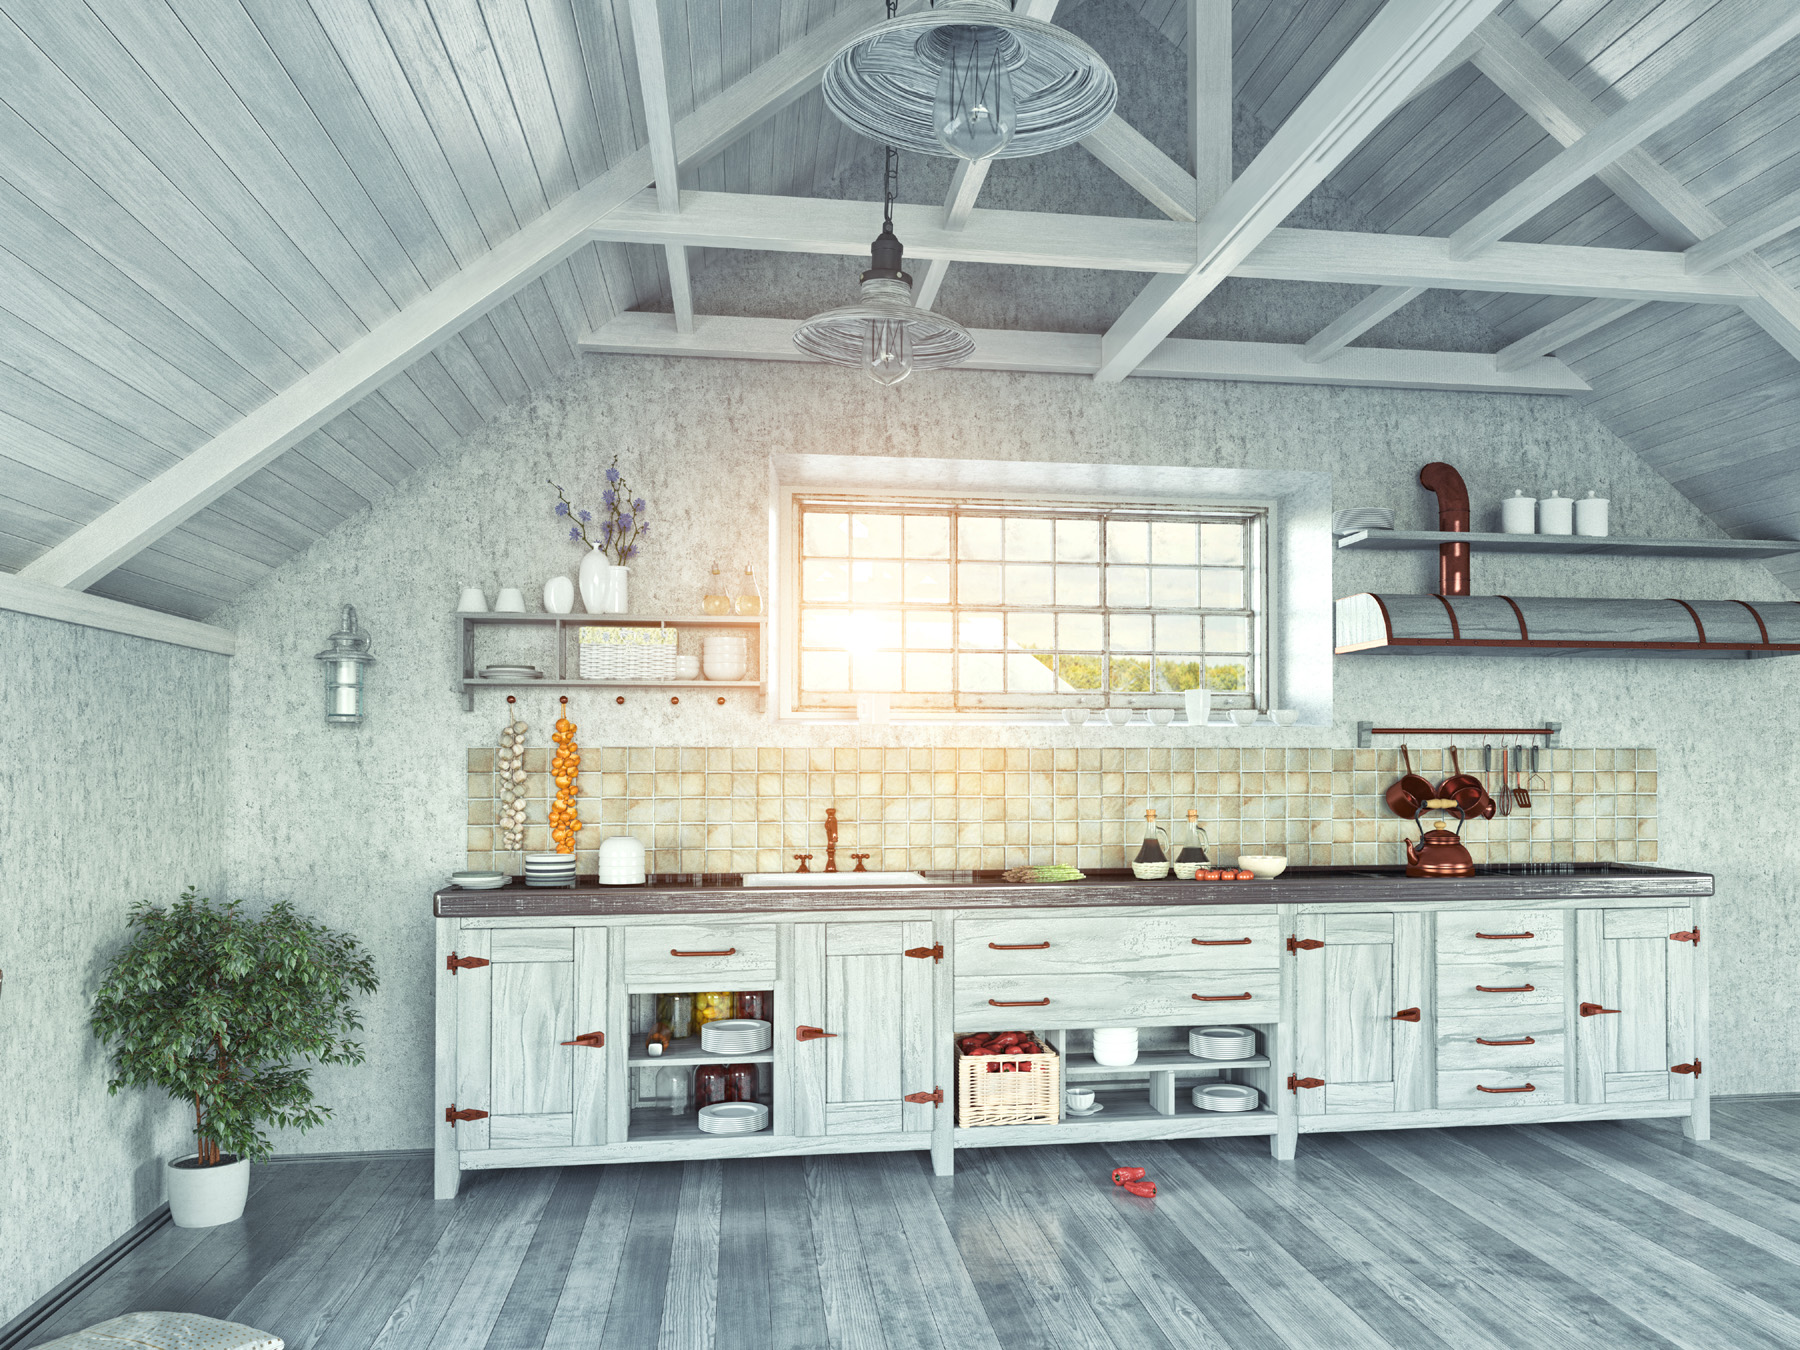 Wooden houses kitchen 51486